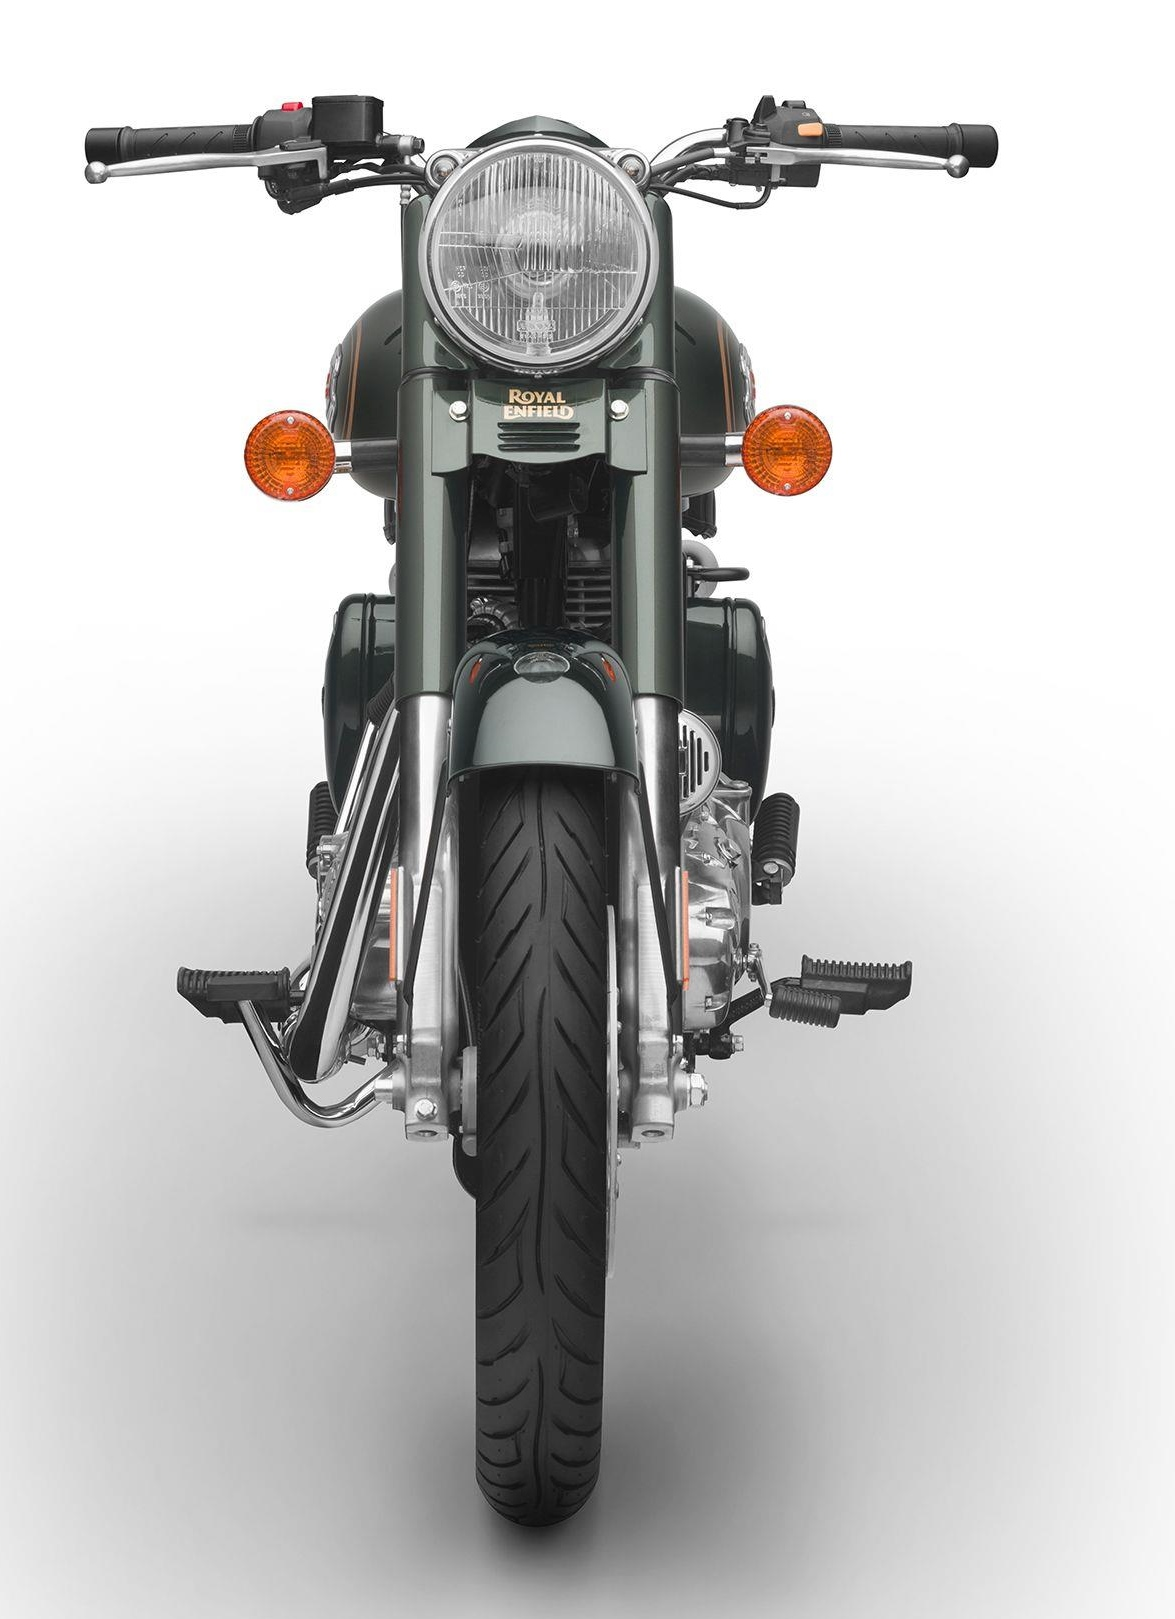 royalenfield_bullet_forestgreen_03jpg